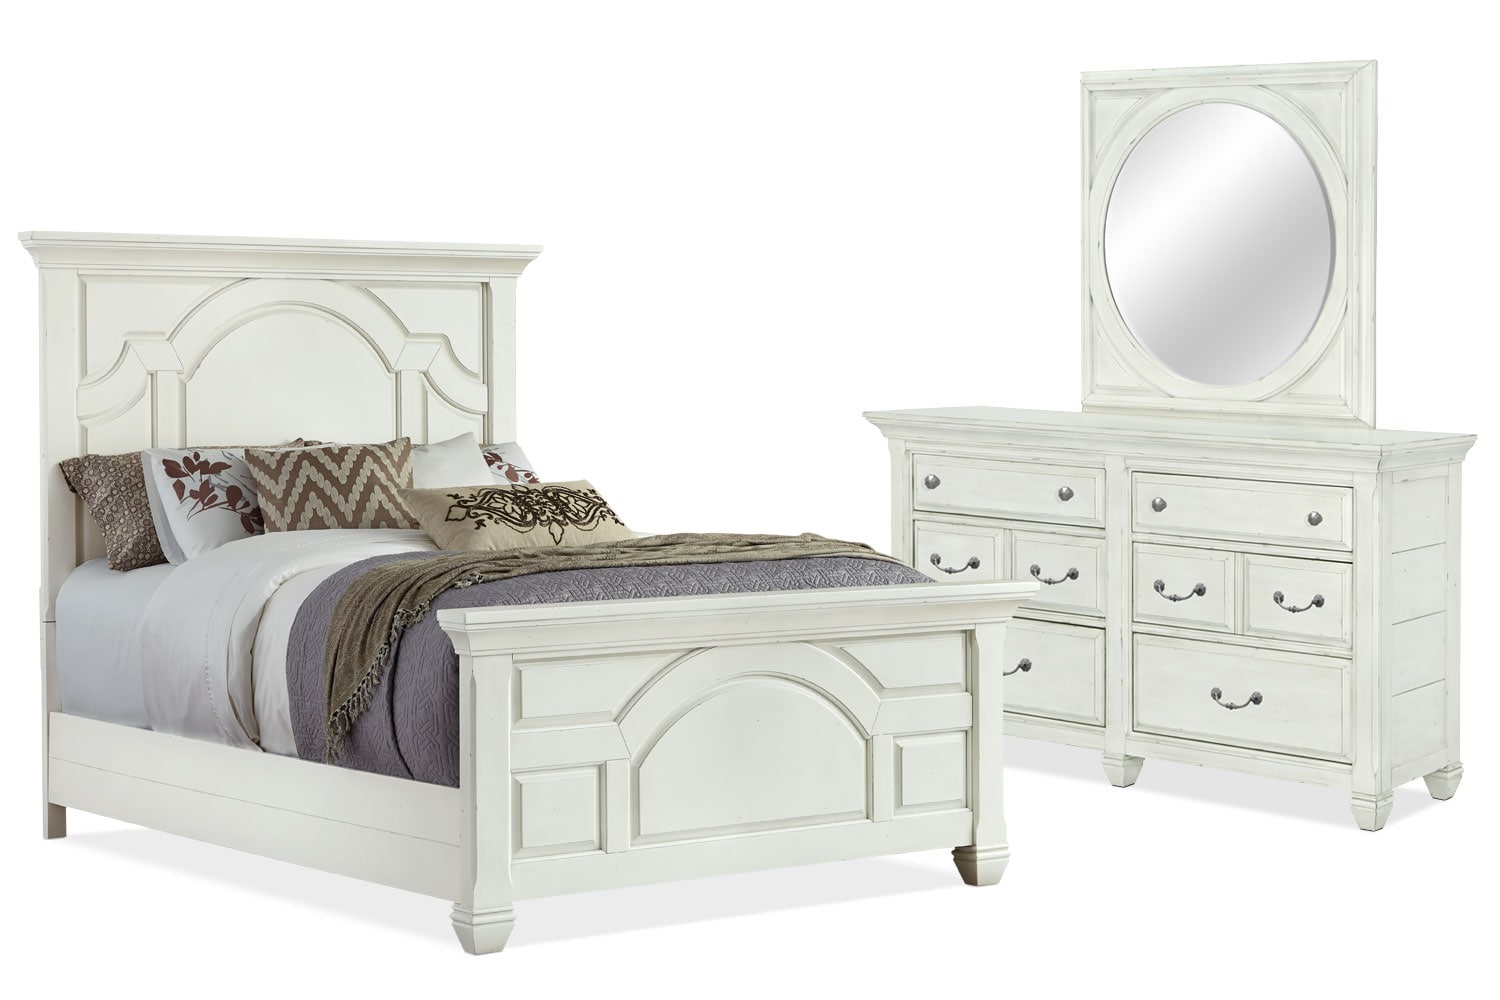 Bedroom Furniture - Hancock Park 5-Piece King Bedroom Package